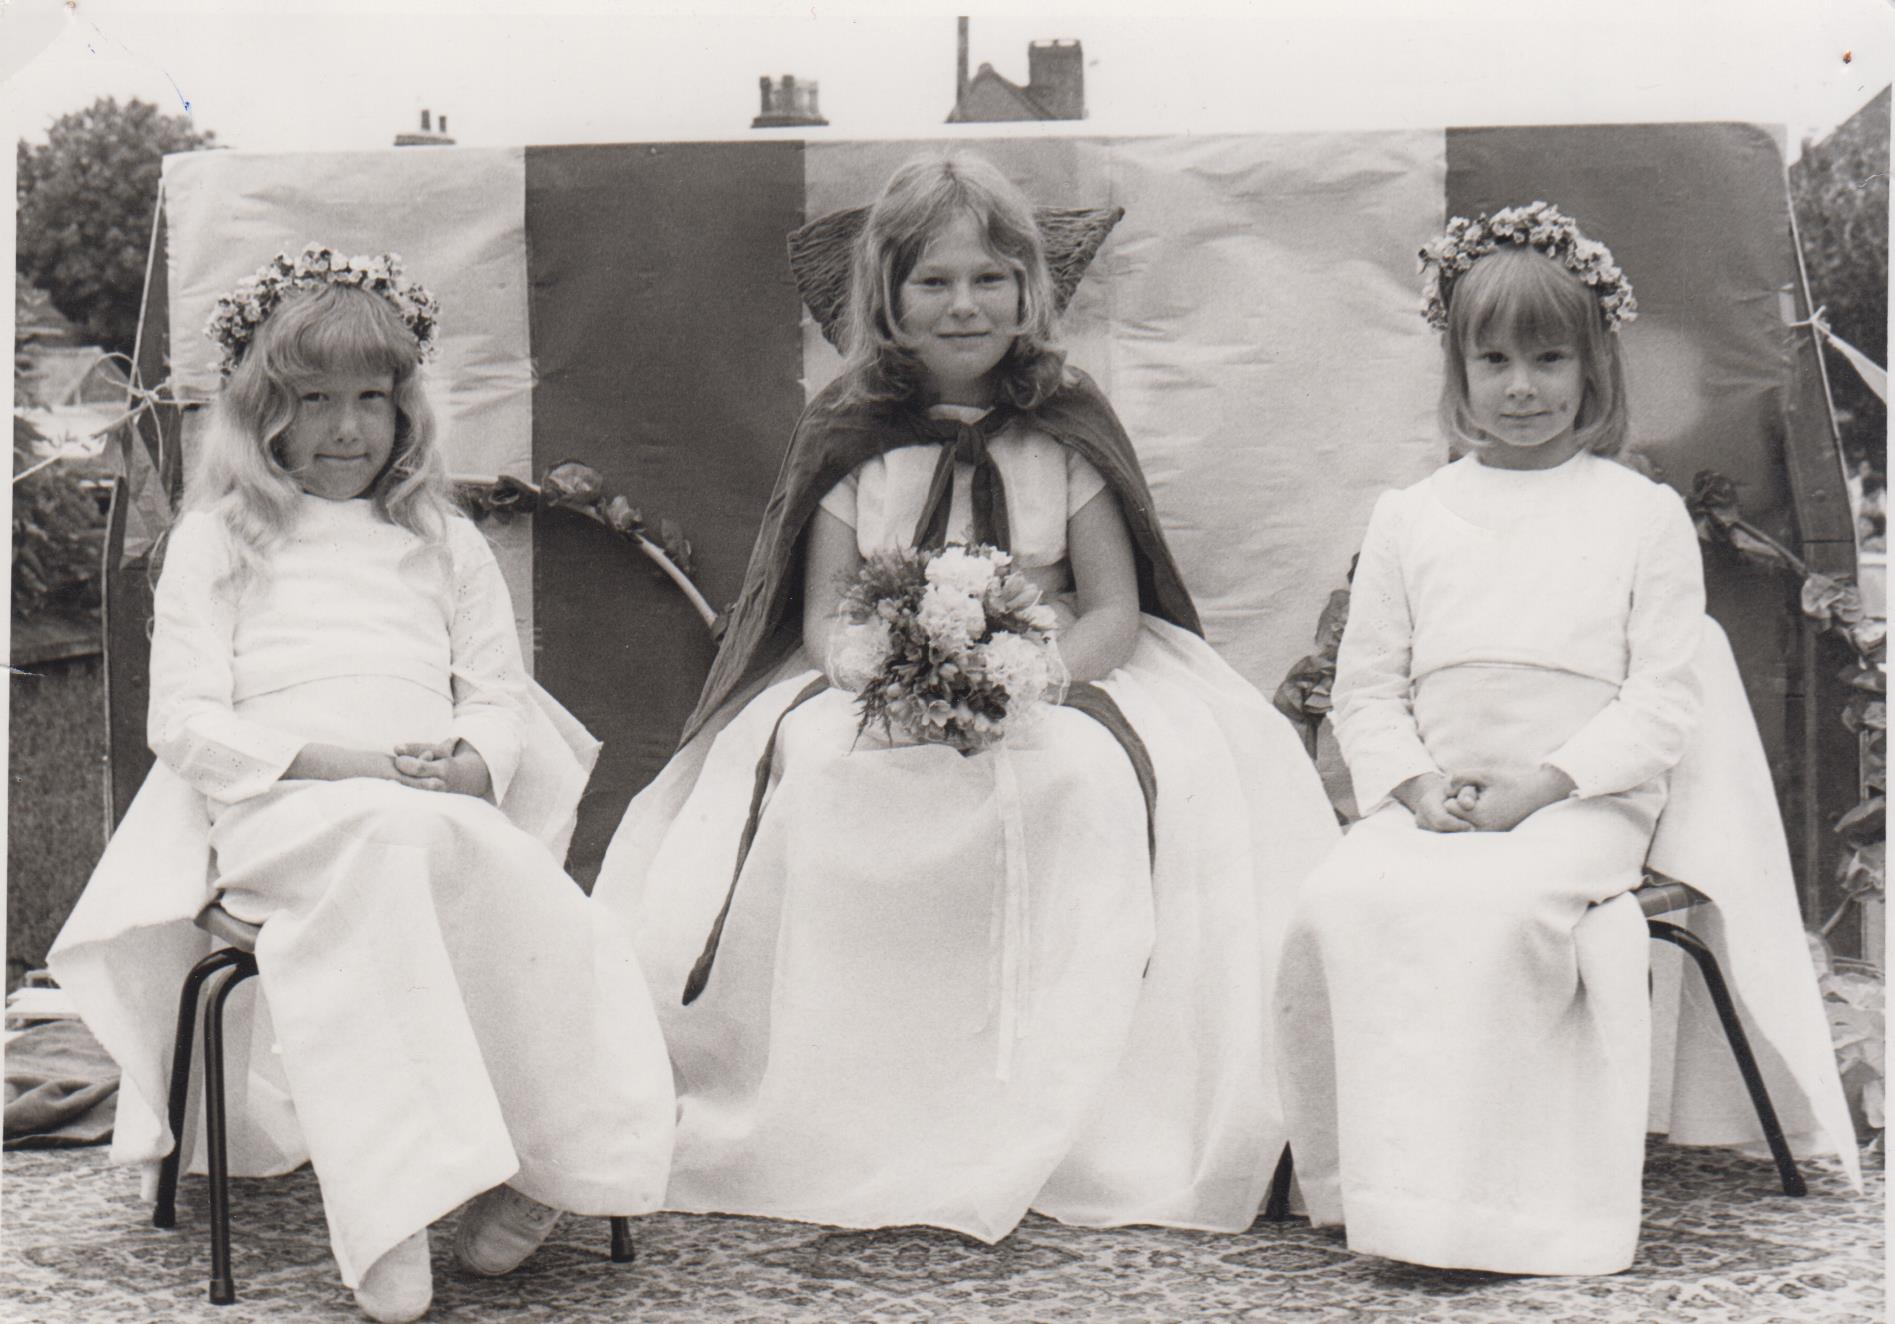 carnival_queen_with_attendants_001.jpg